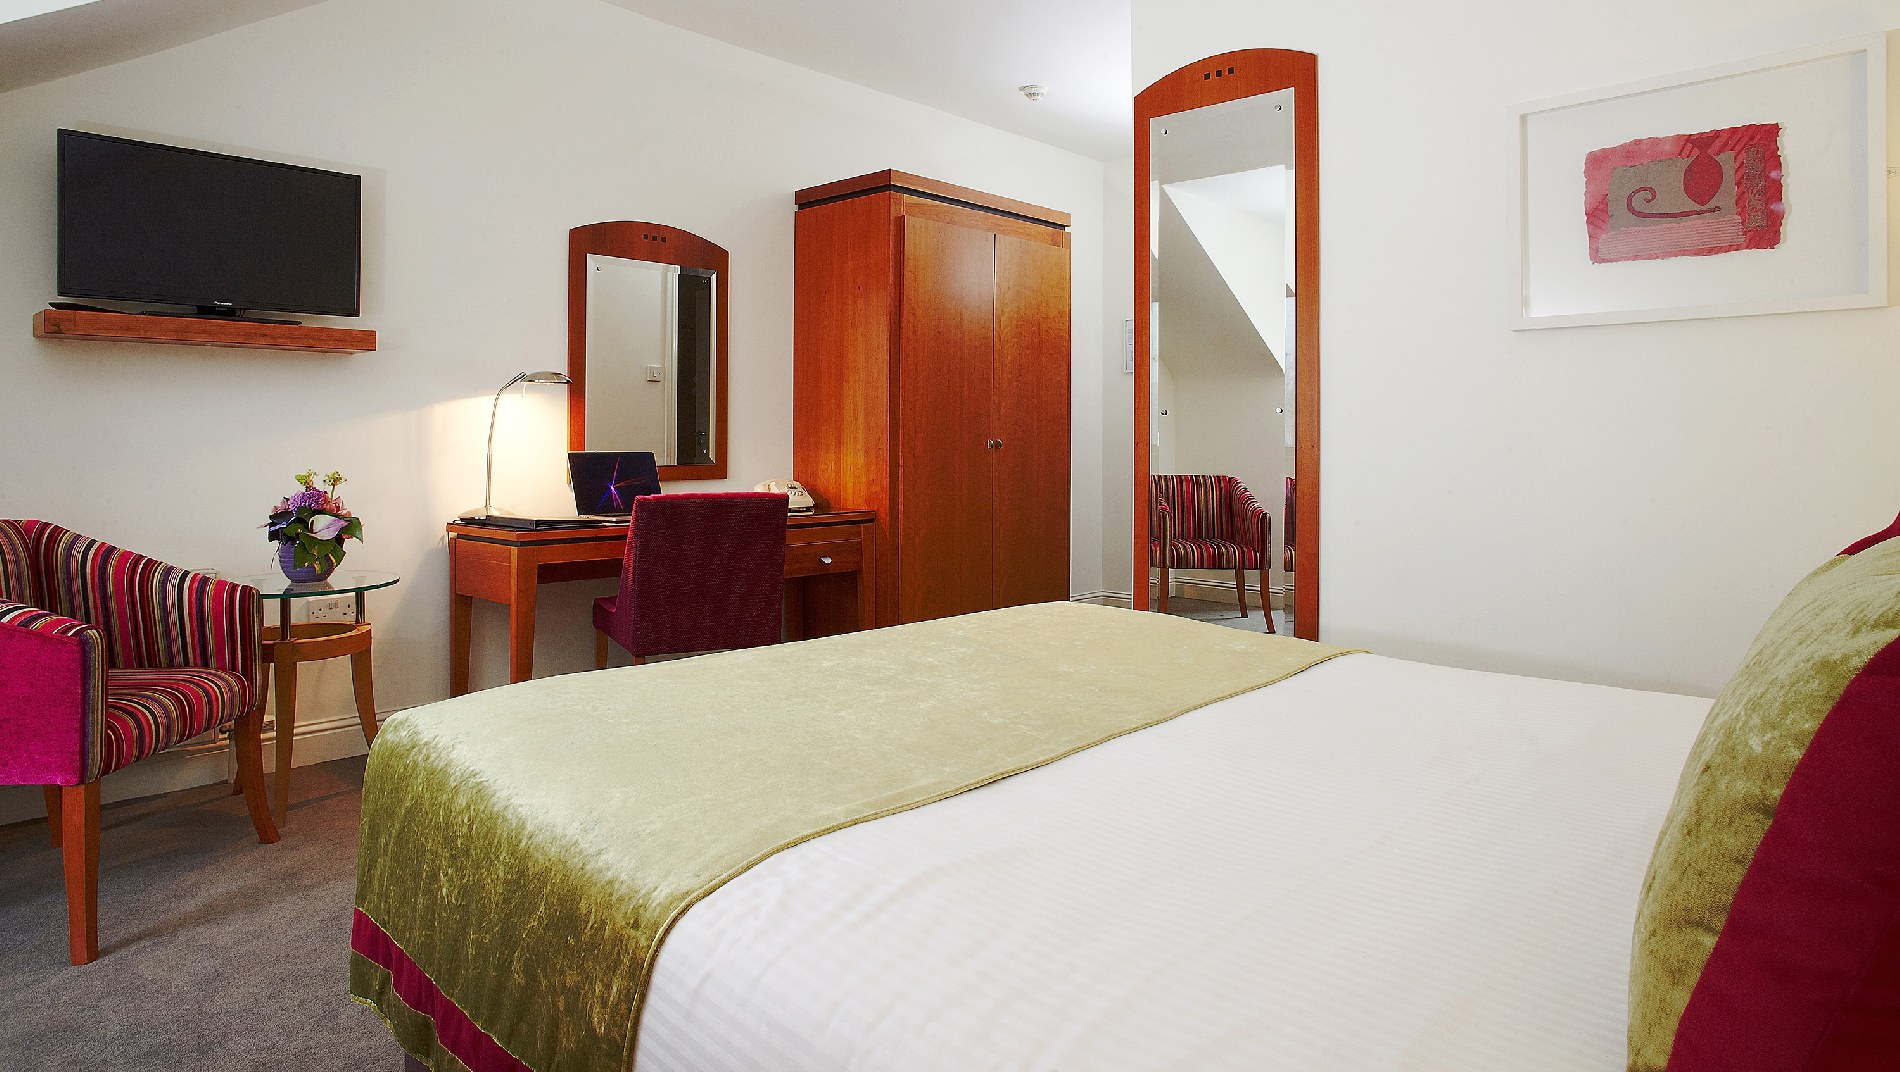 looking for 4 star hotel accommodation in cork - Cork Bedroom 2015